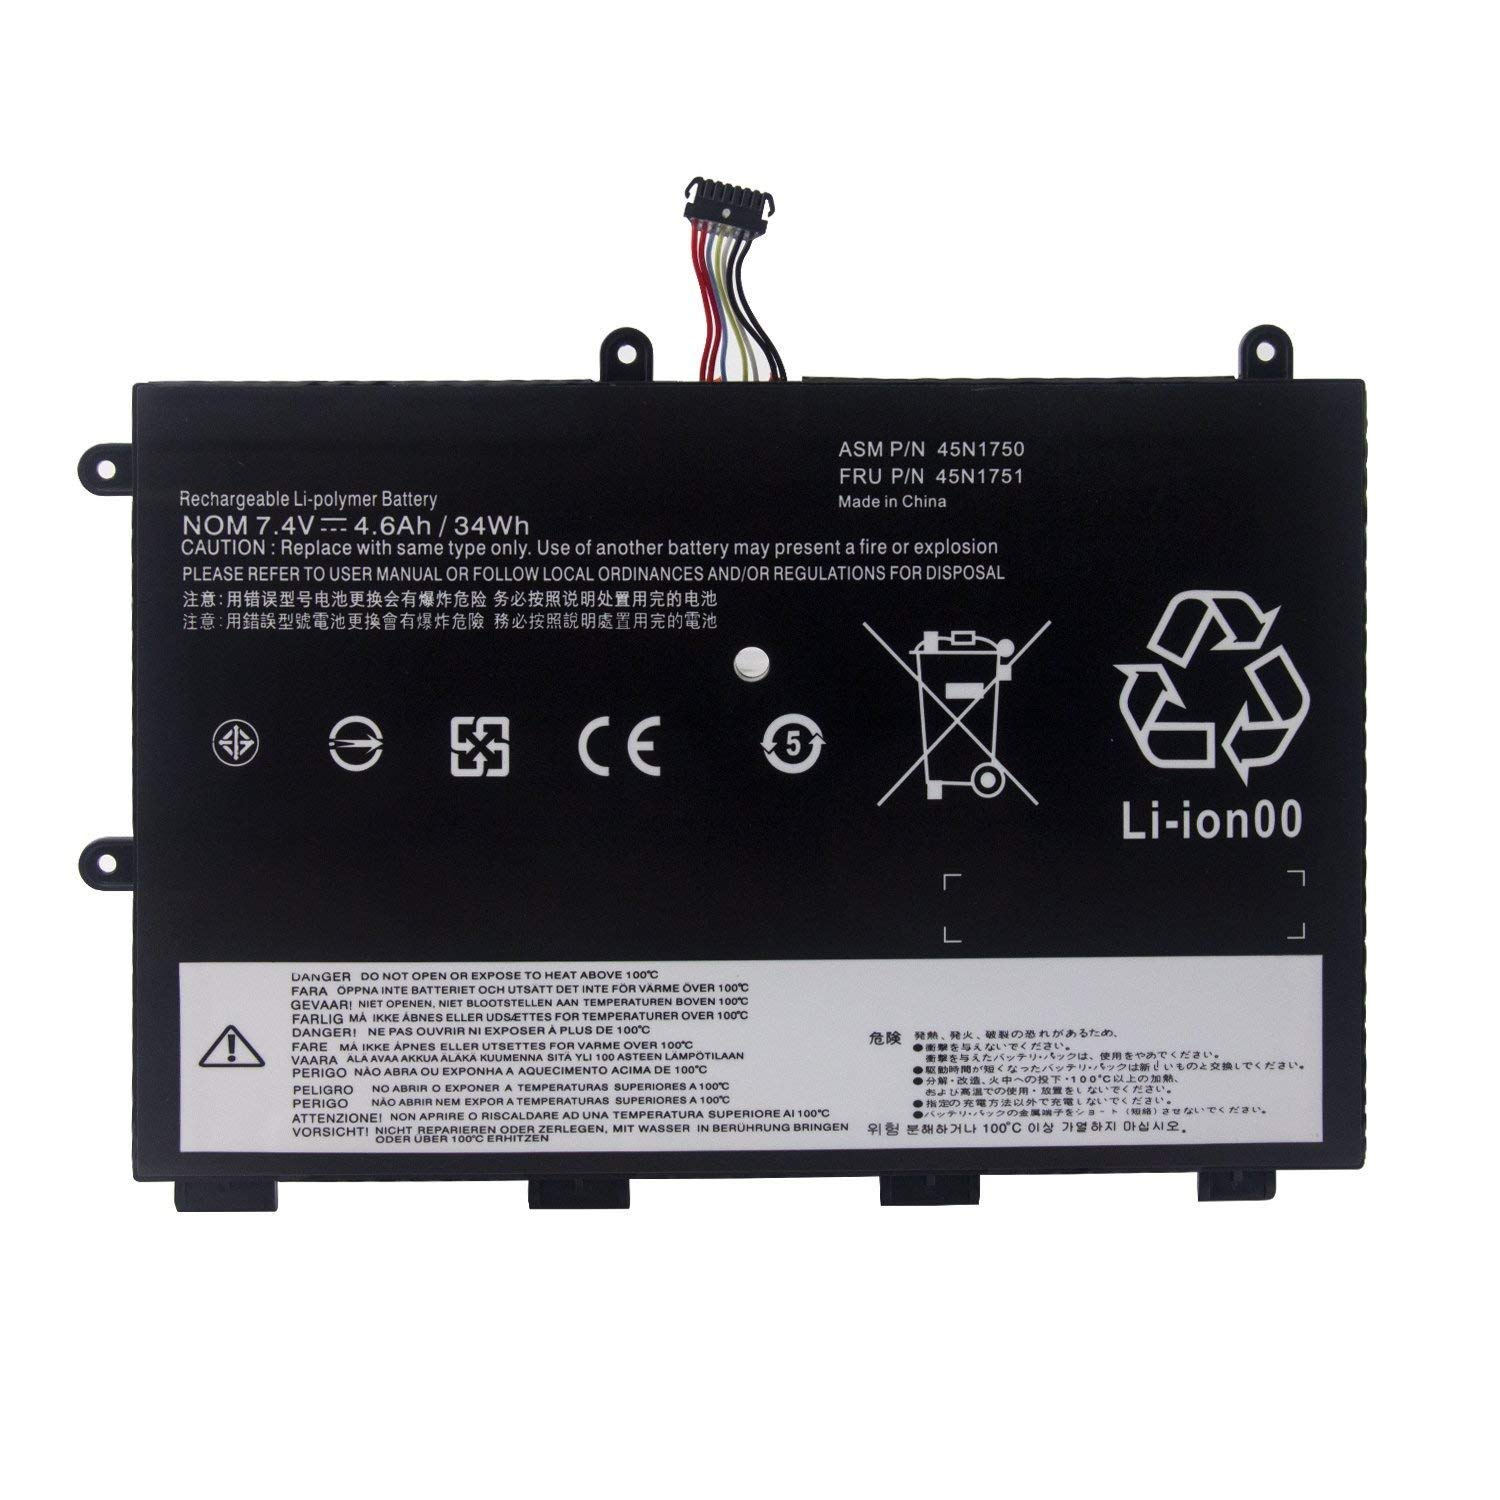 Honest New For Lenovo Thinkpad T400 R400 T500 W500 T60 T61 R61 Us Keyboard 42t3273 42t3241 42t3143 42t3186 42t3218 42t3186 42t3218 Replacement Keyboards